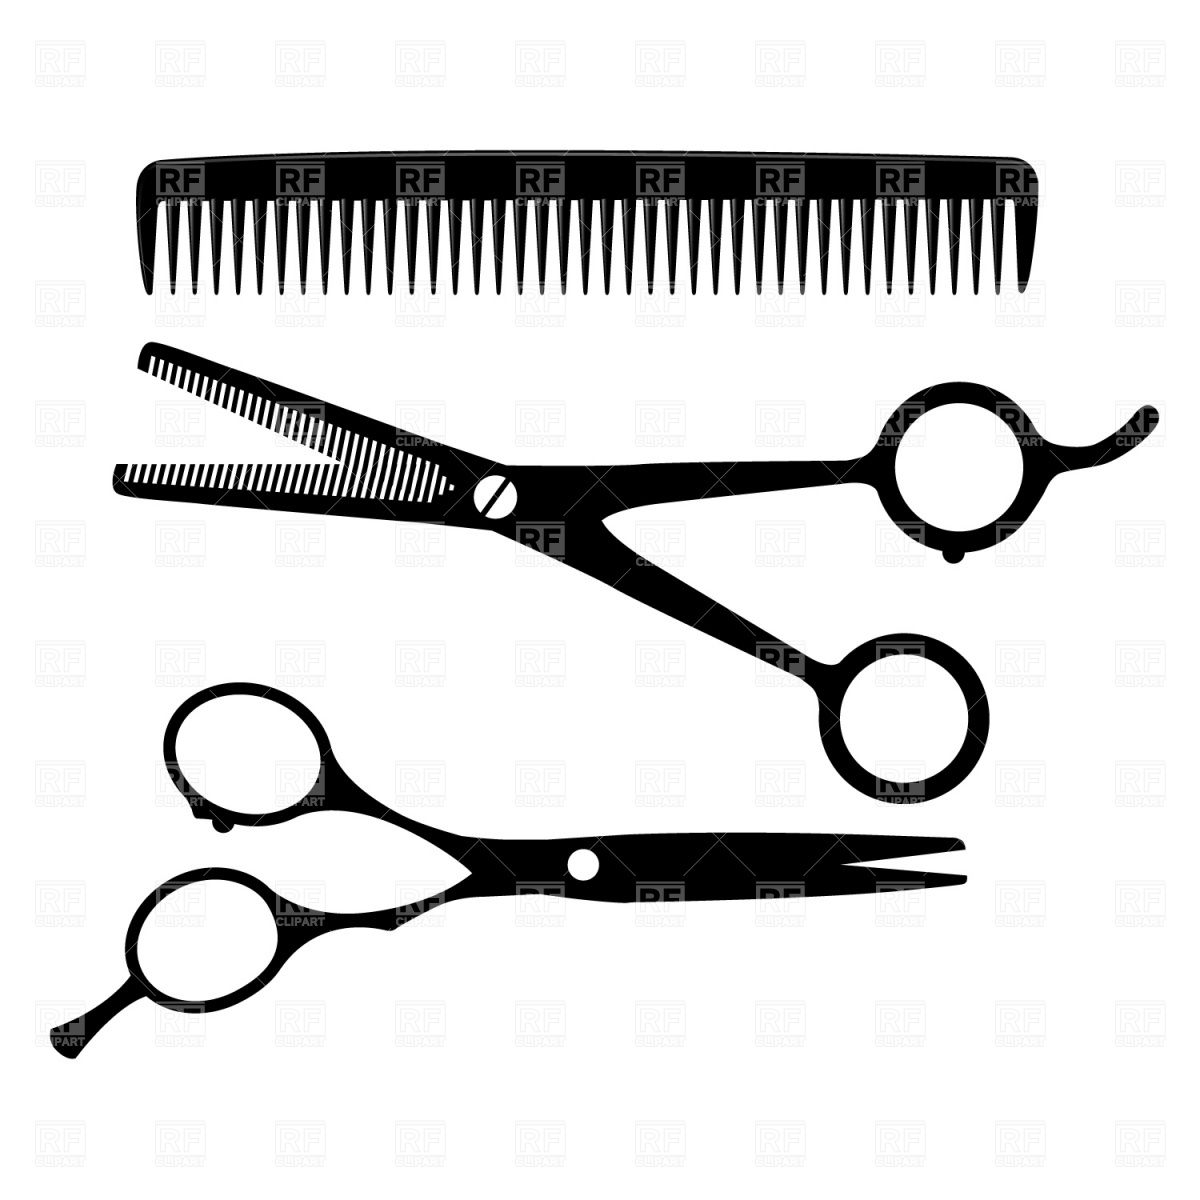 Comb and scissors clipart black and white svg royalty free download Hairdresser equipment - scissors and comb Vector Image – Vector ... svg royalty free download